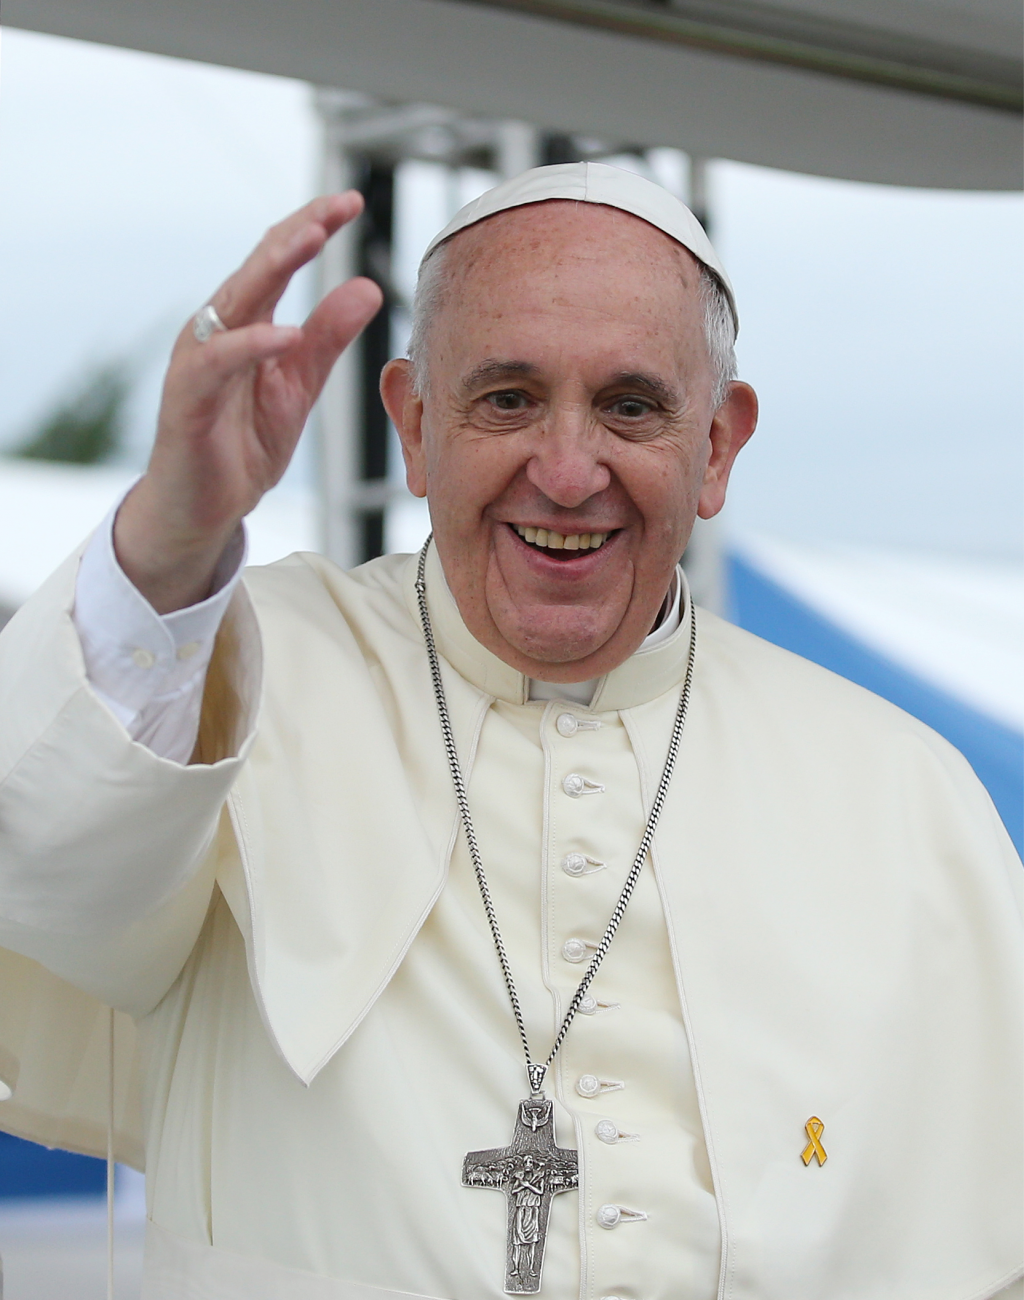 Pope Francis unapologetically shows support for gay marriage